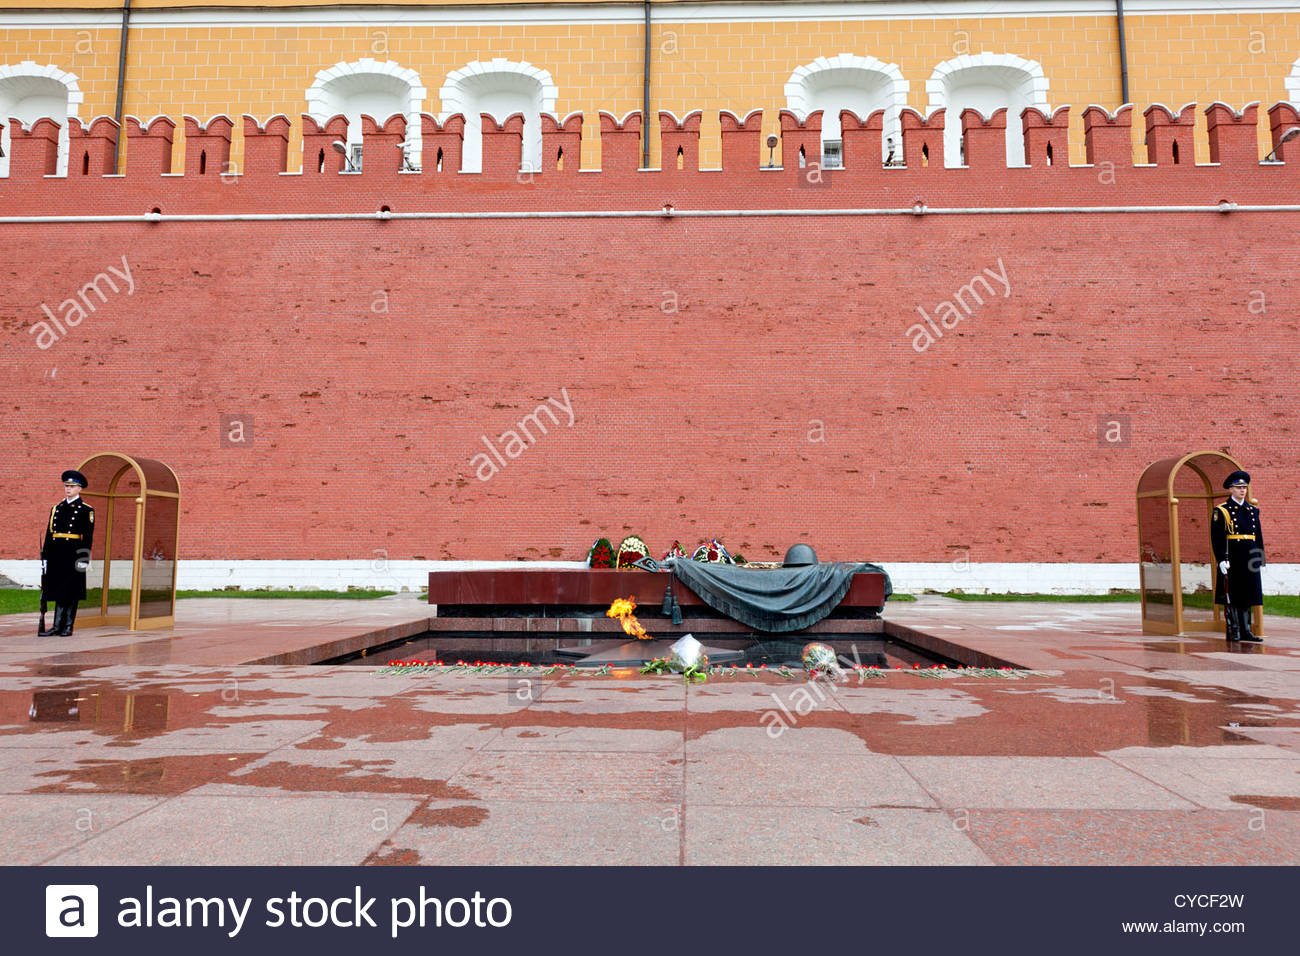 Tomb of the Unknown Soldier Moscow, Soldiers standing guard at the Tomb of the Unknown Soldier, Moscow ...